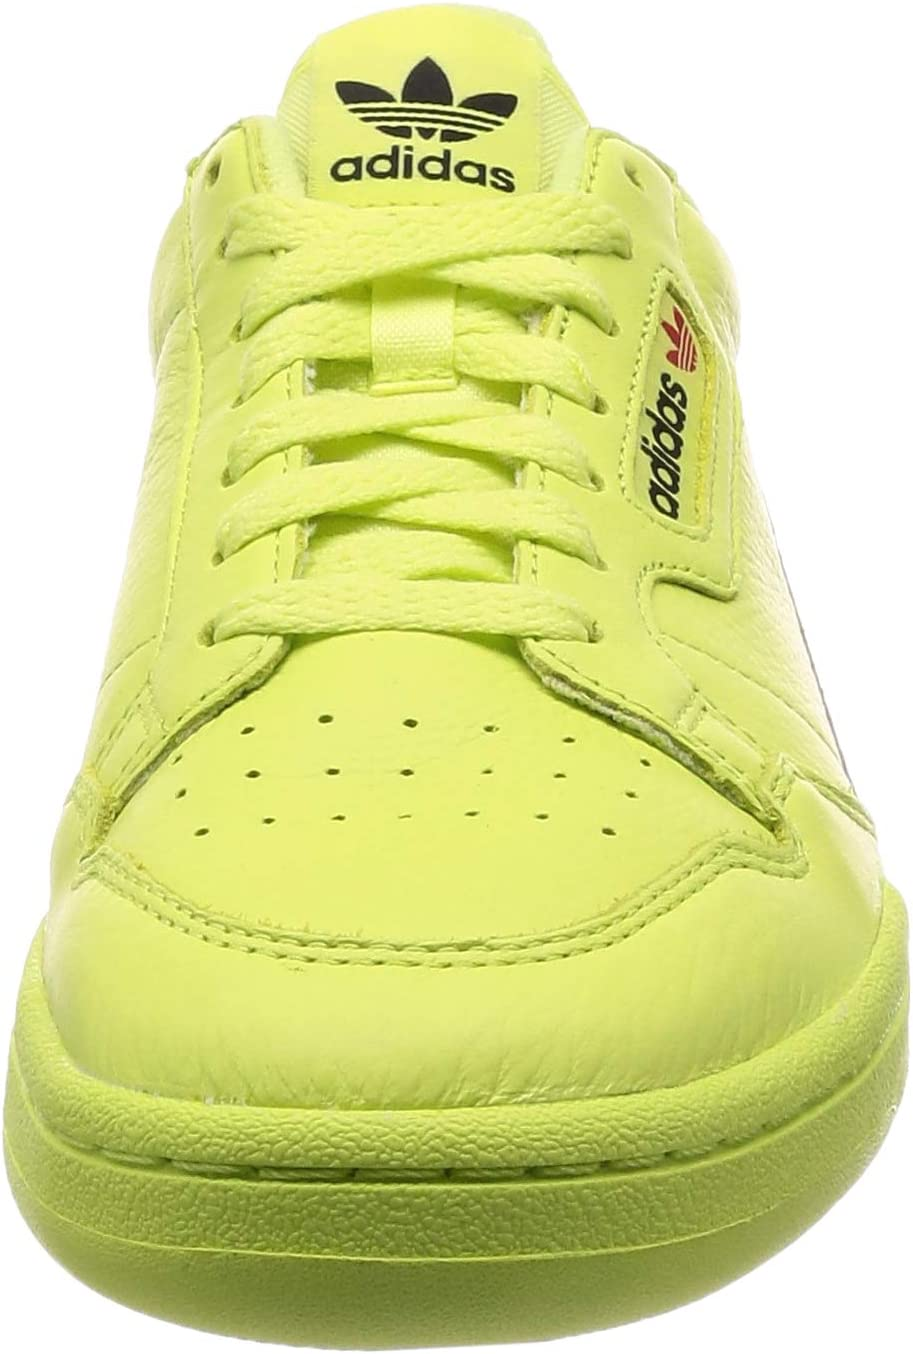 Adidas Continental 80 Fitnessschoenen, heren, wit, Unknown Multicolour Seamhe Escarl Maruni 0